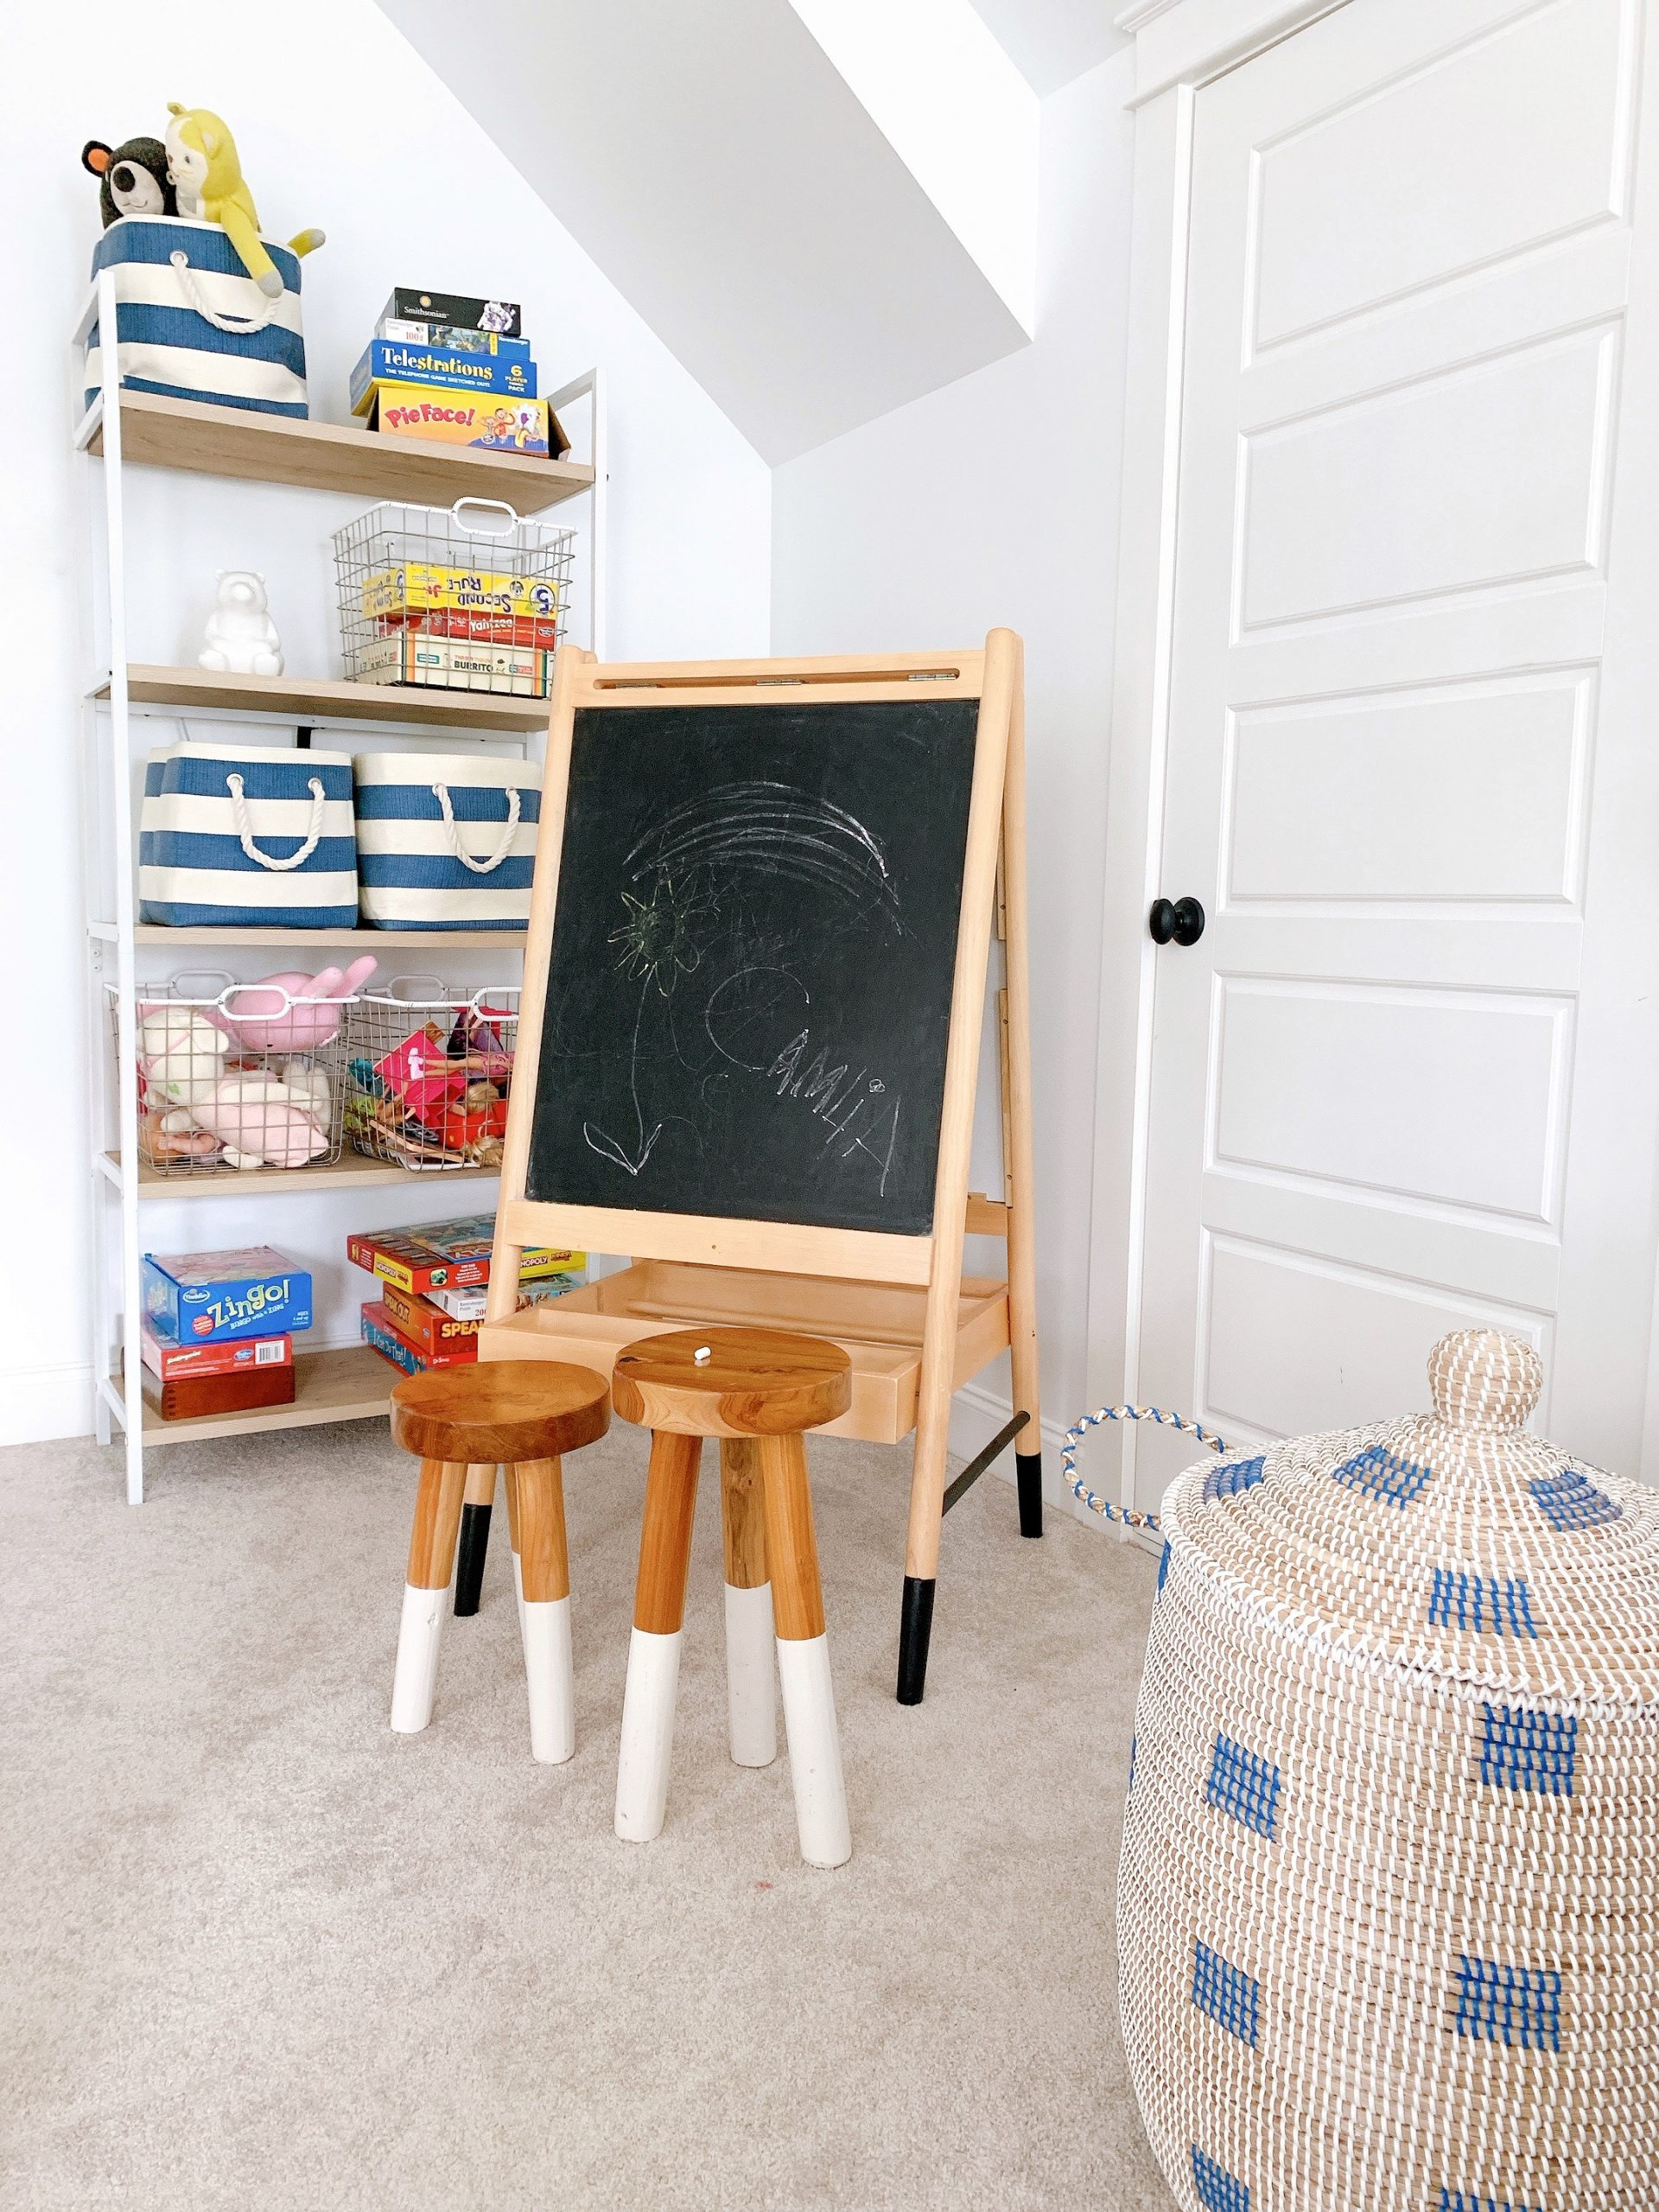 chalkboard for kids in a playroom